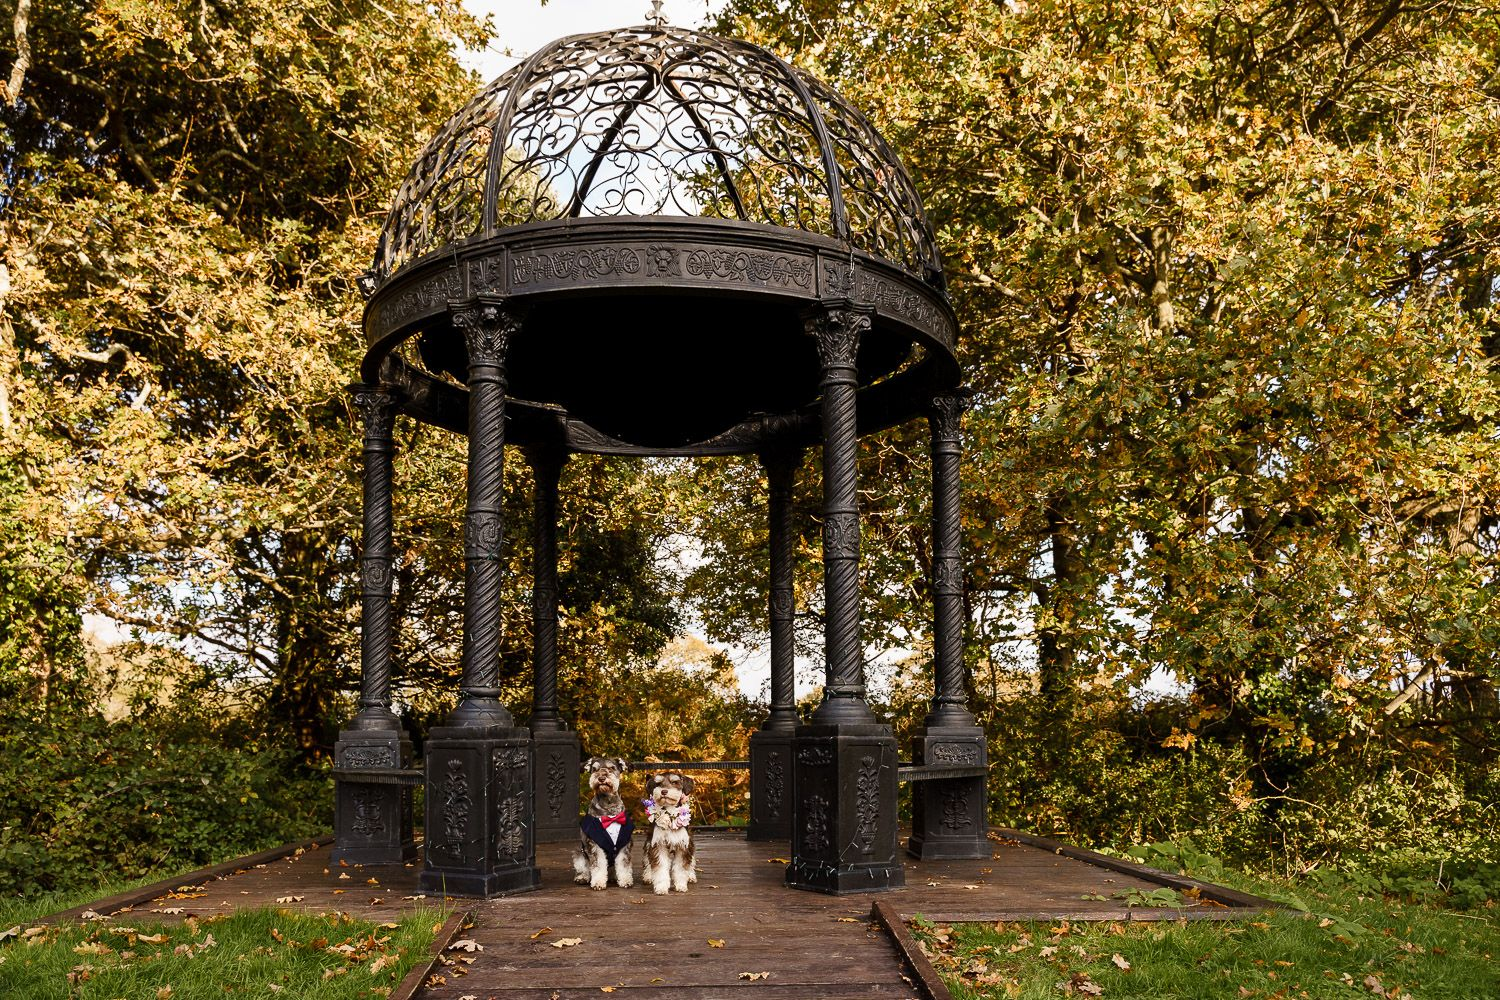 Two schnauzers in a tuxedo and flower collar in an outdoor wedding pergola. Top 10 dog-friendly wedding tips.